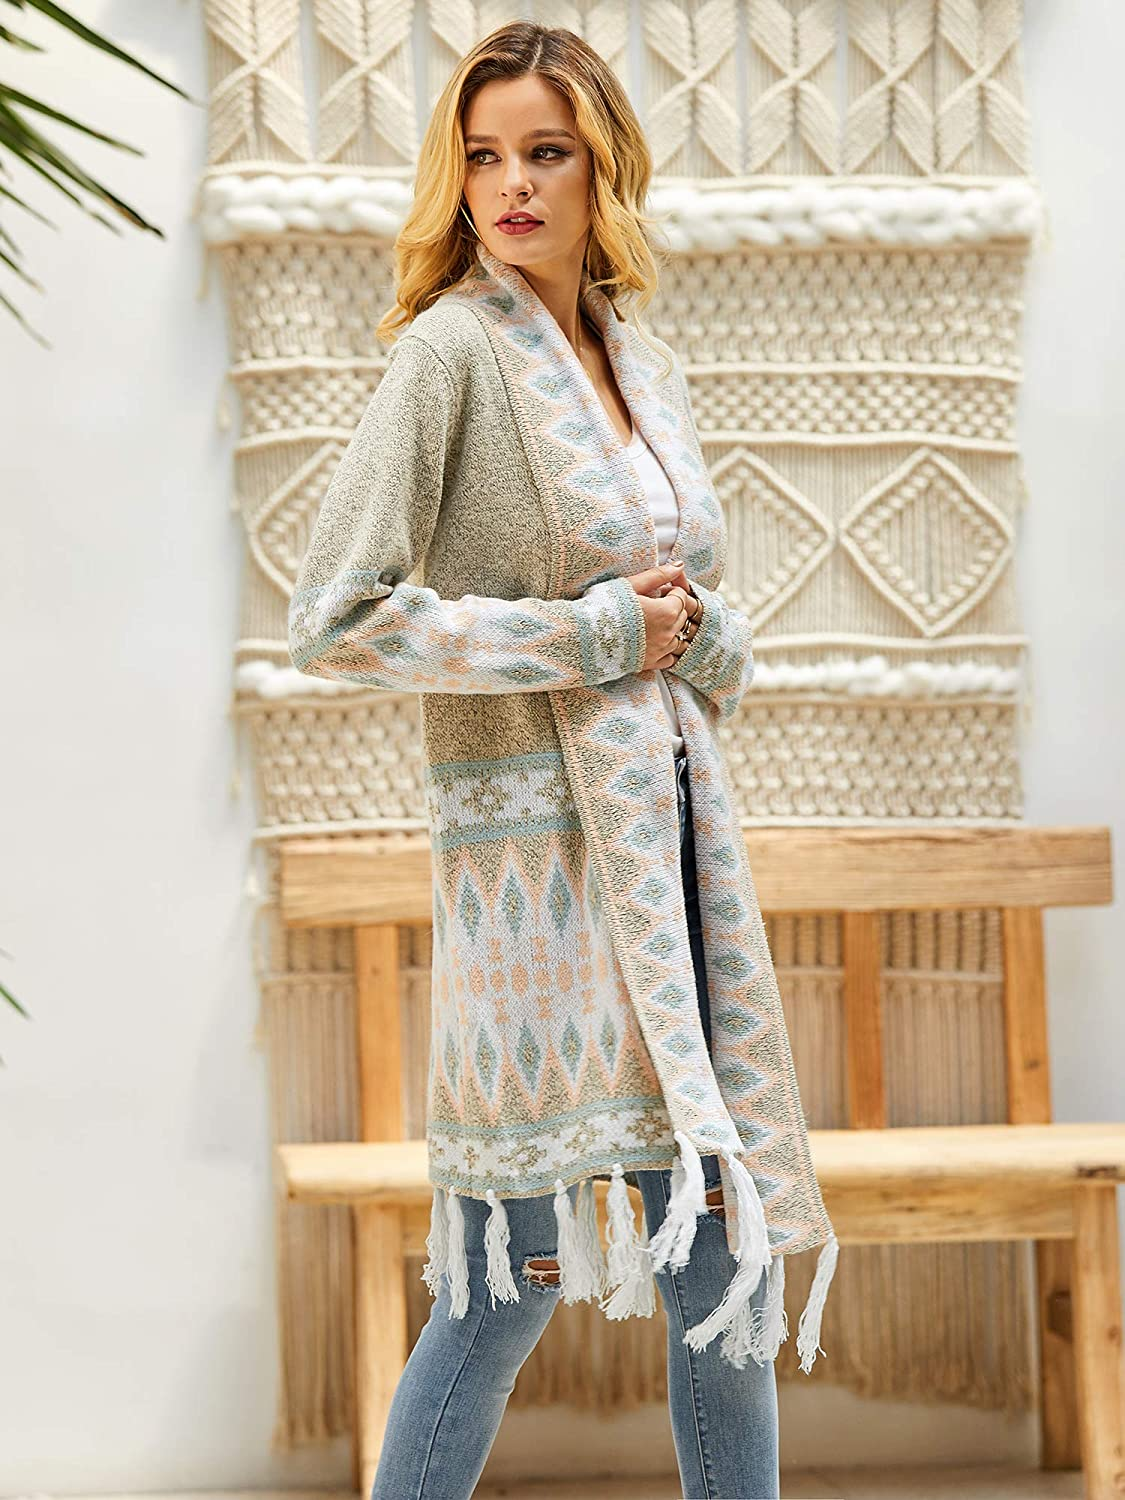 1920s Coats, Furs, Jackets and Capes History Misassy Womens Boho Open Front Long Cardigans Sweater Loose Long Sleeve Aztec Embroidery Tassels Kimono Duster Outwear $37.88 AT vintagedancer.com